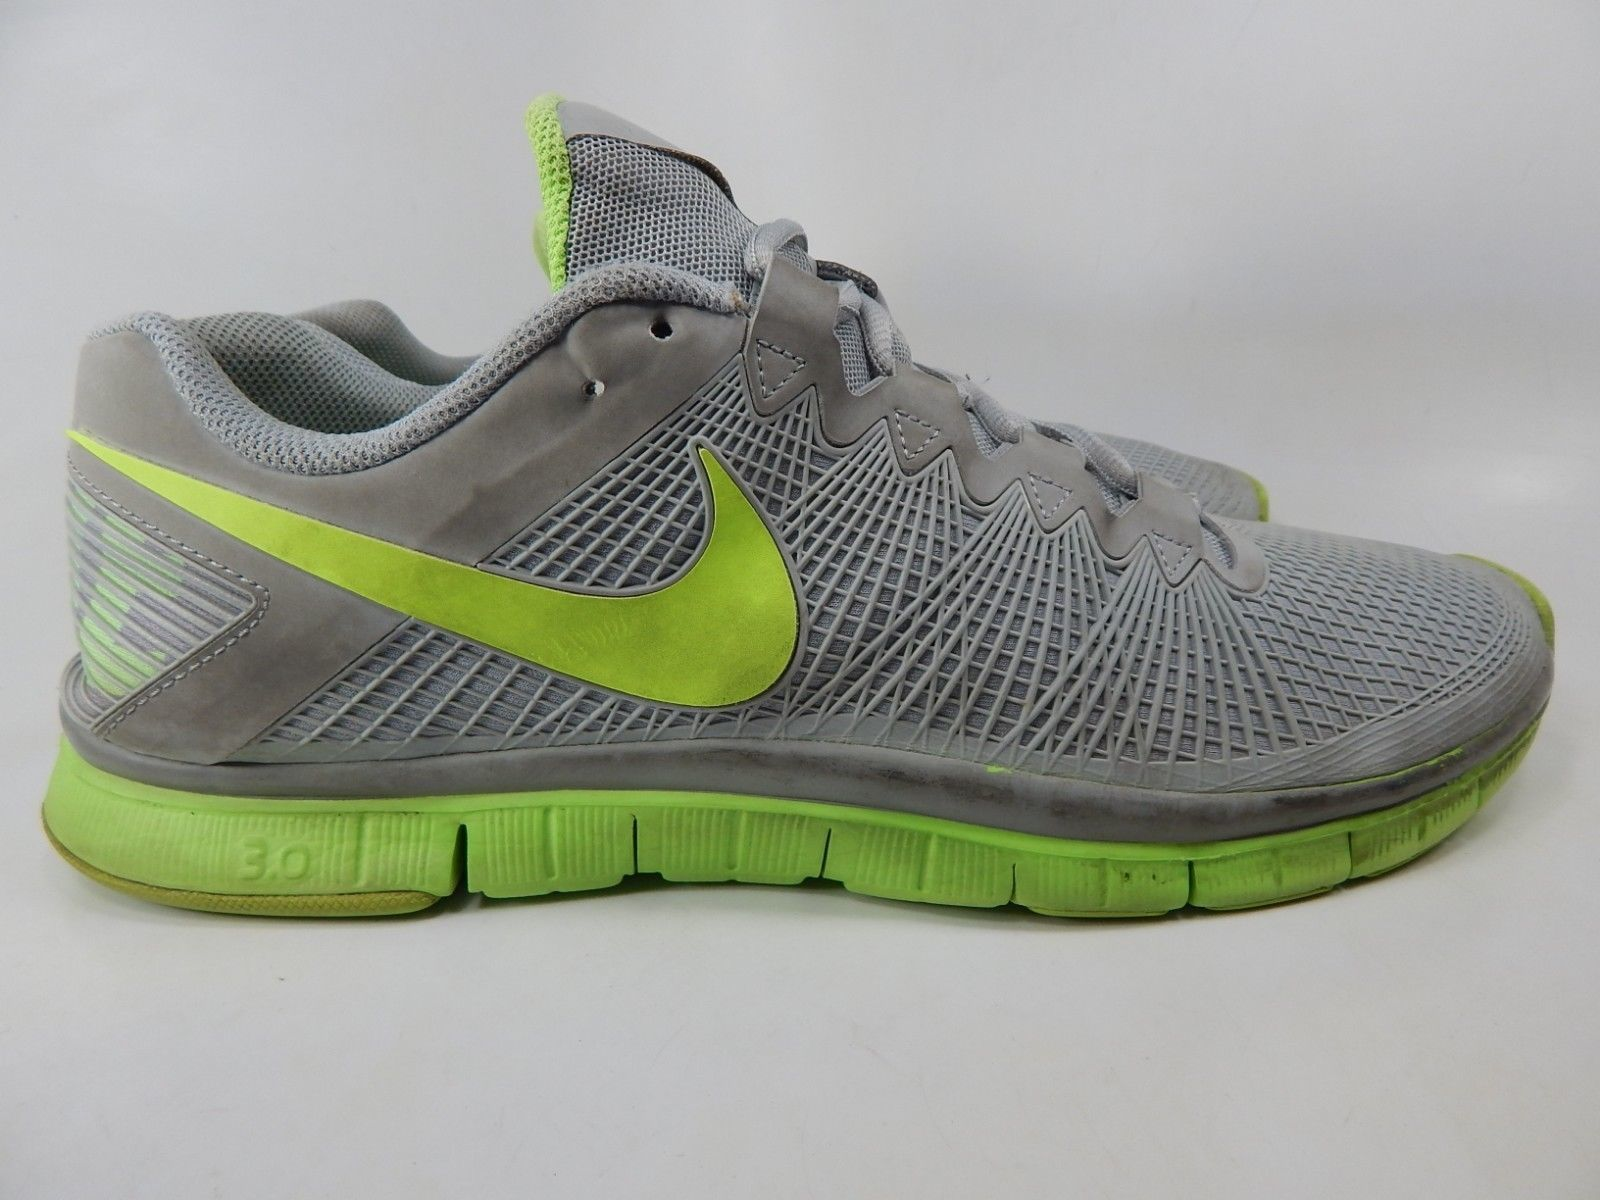 a few days away sale online uk store Nike Free Trainer 3.0 Size 13 M (D) EU 47.5 and 50 similar items